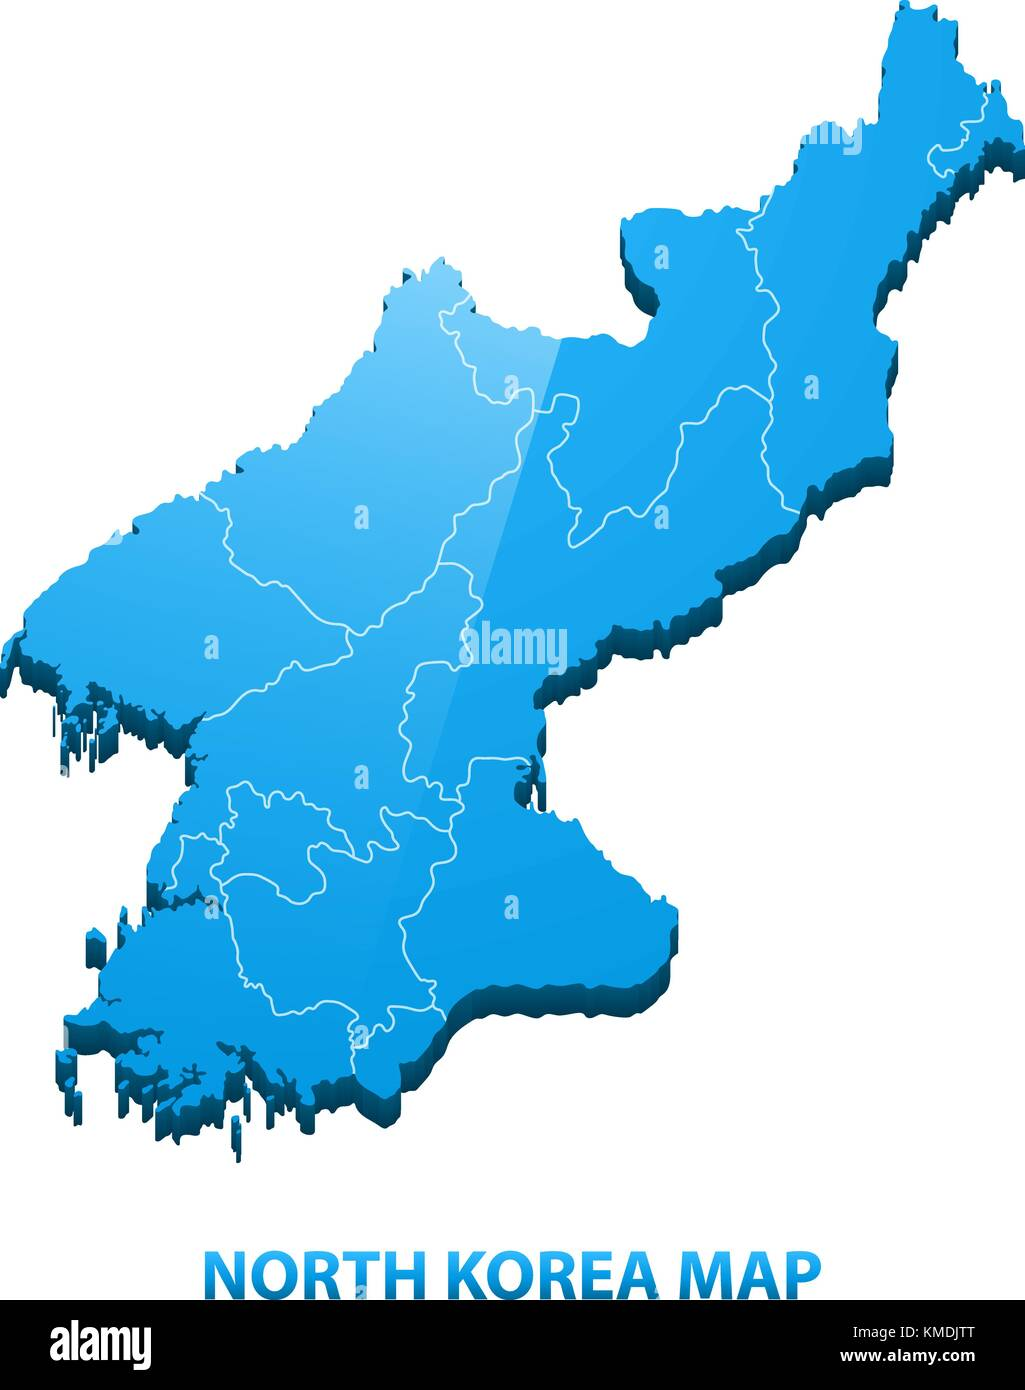 Grenze Nordkorea Südkorea Karte.Map Korea Peninsula Stockfotos Map Korea Peninsula Bilder Alamy